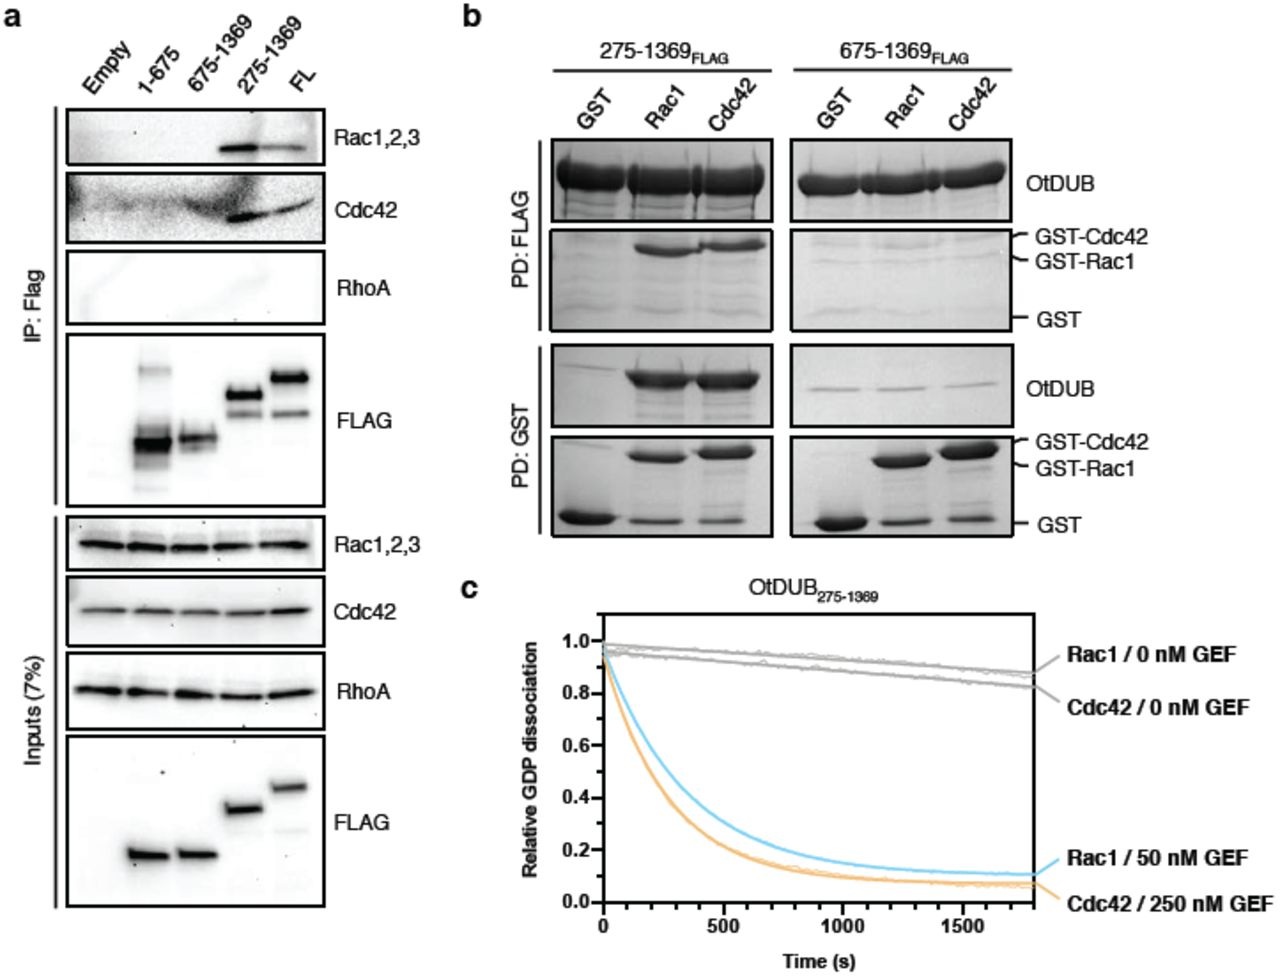 OtDUB binds Rac1 and Cdc42 and catalyzes nucleotide exchange in vitro (a) Inputs and anti-Flag immunoprecipitates of lysates from HeLa cell ectopically expressing the indicated Flag-tagged OtDUB fragments. Proteins were resolved by SDS-PAGE and immunoblotted for Rho GTPases (Rac1,2,3; Cdc42; RhoA). (b) FLAG (top) and reciprocal GST (bottom) pulldown experiments between purified recombinant FLAG-tagged OtDUB fragments and GST-tagged Rac1 or Cdc42. Proteins were resolved by SDS-PAGE and stained with Coomassie Blue. (c) Time course of the dissociation of <t>BODIPY-GDP</t> from Rac1 or Cdc42 (9 μM) in the presence of OtDUB 275-1369 (0, 50, or 250 nM) as measured by loss of BODIPY-GDP fluorescence. Excitation and emission wavelength were 488 nm and 535 nm, respectively.